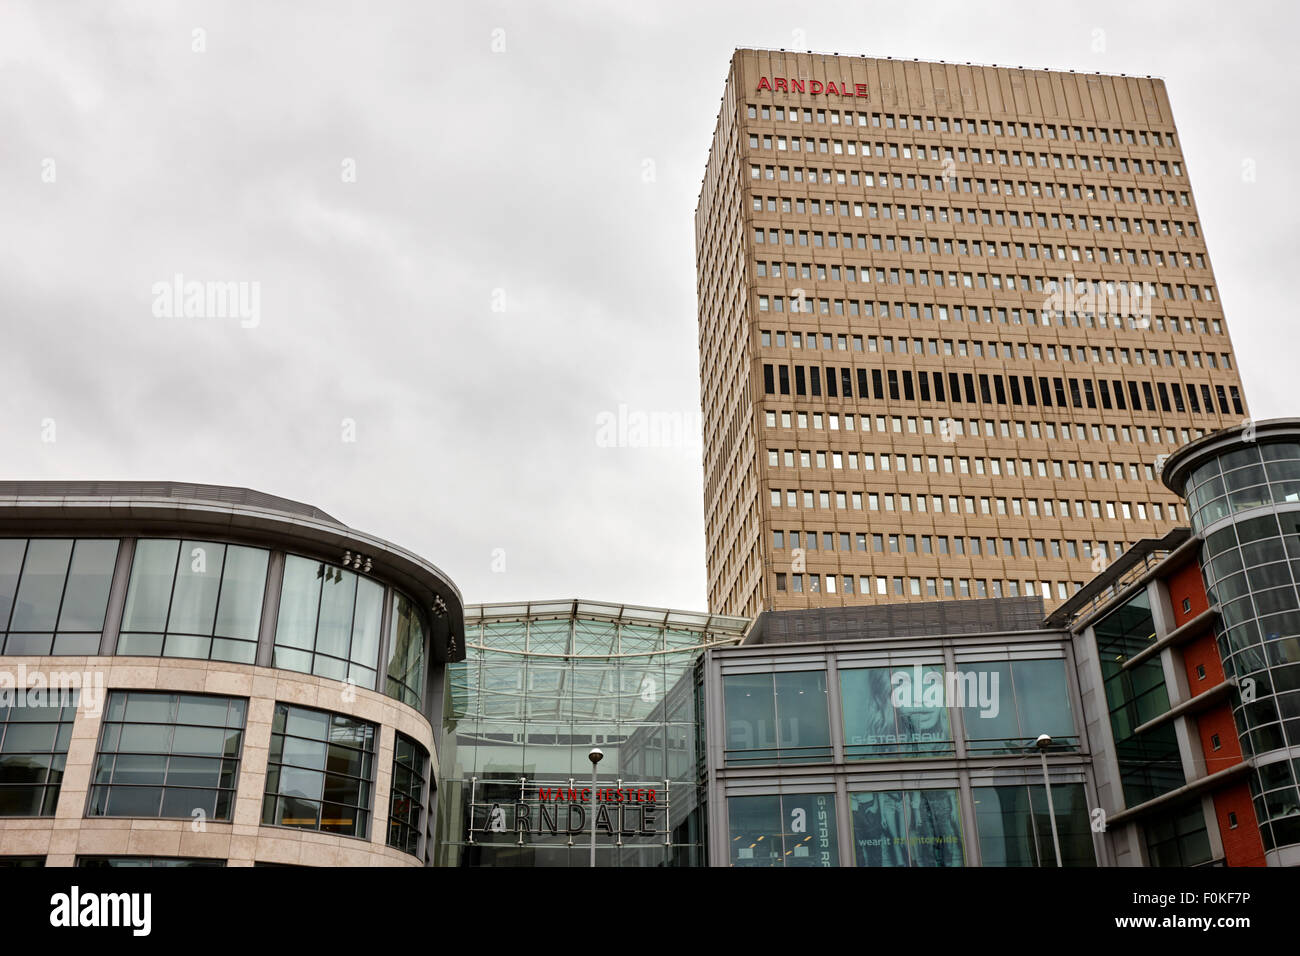 The arndale shopping centre and office tower Manchester England UK - Stock Image